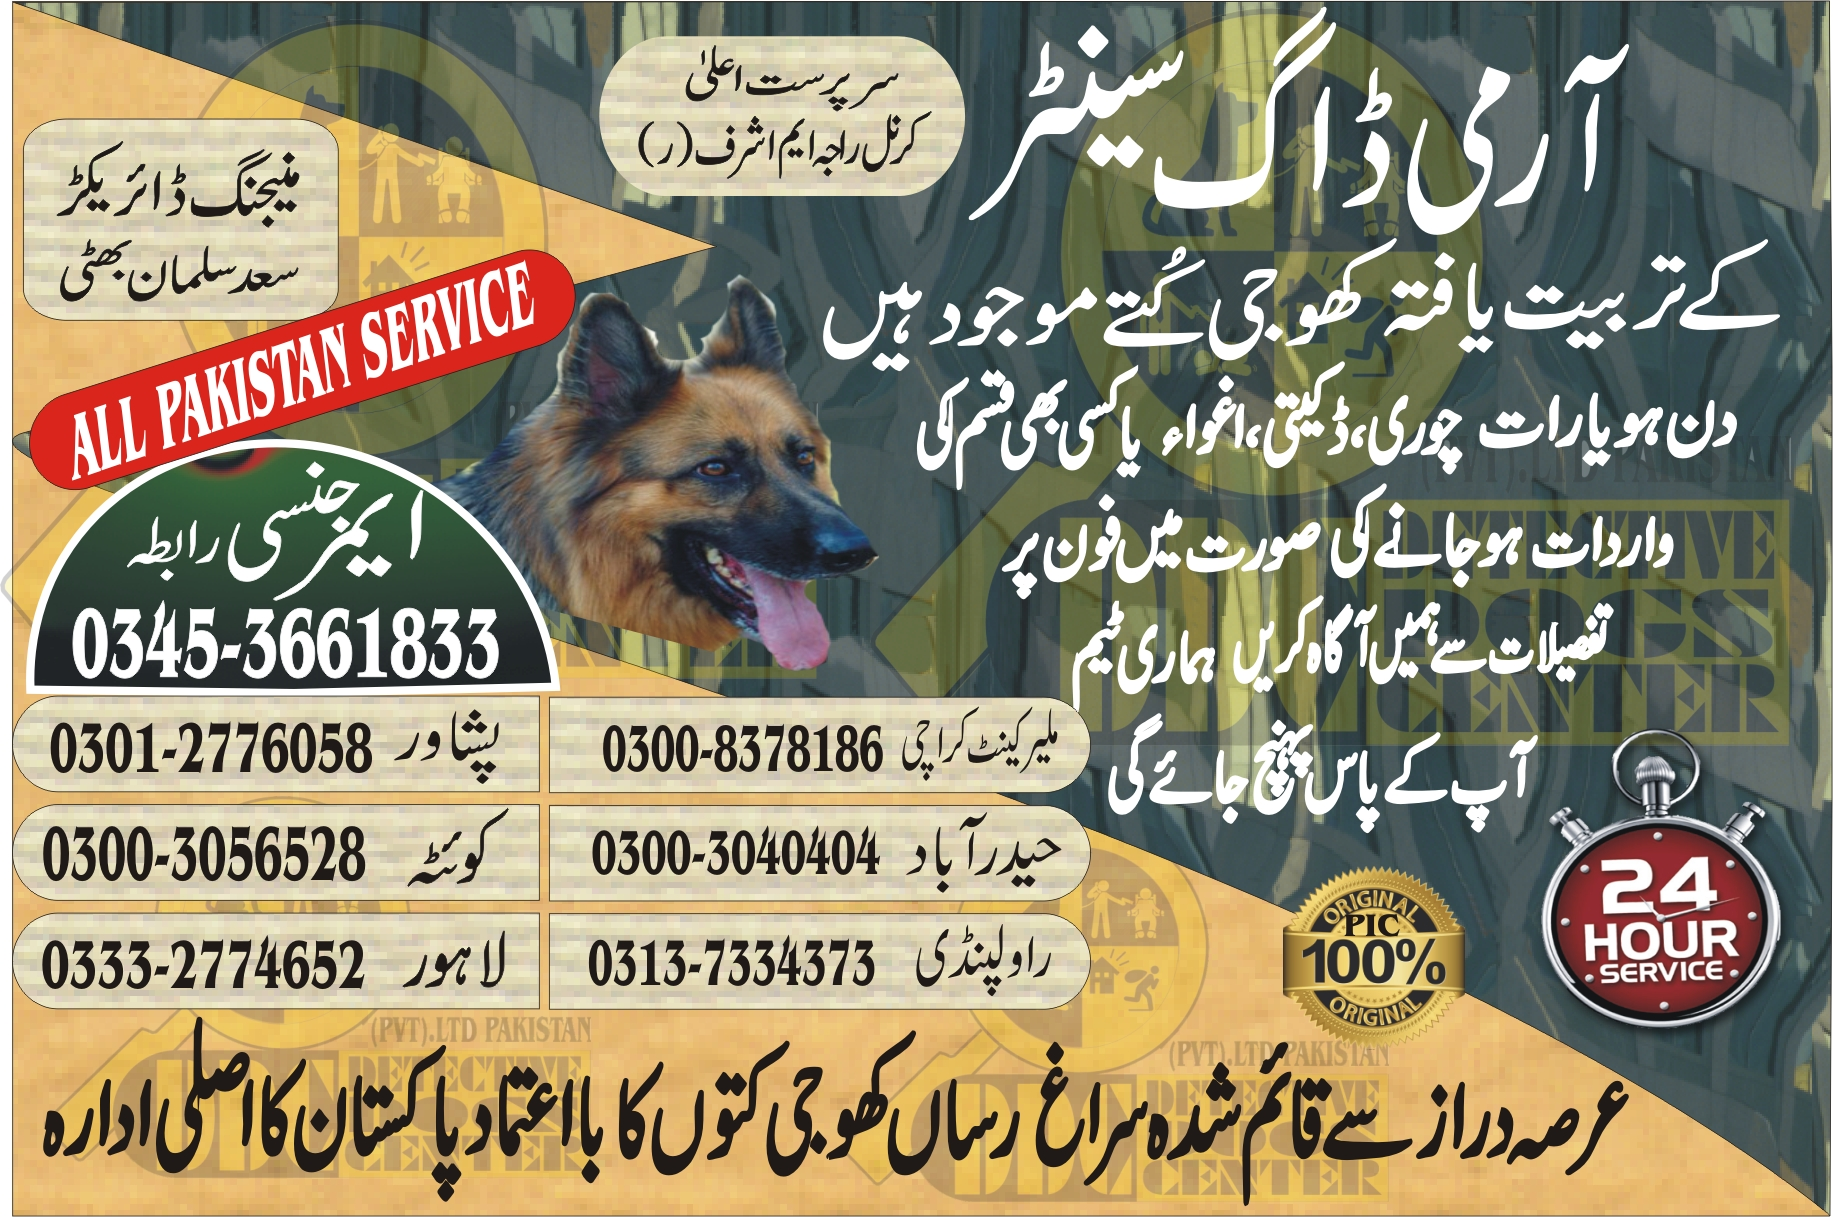 Army Dog Center Official